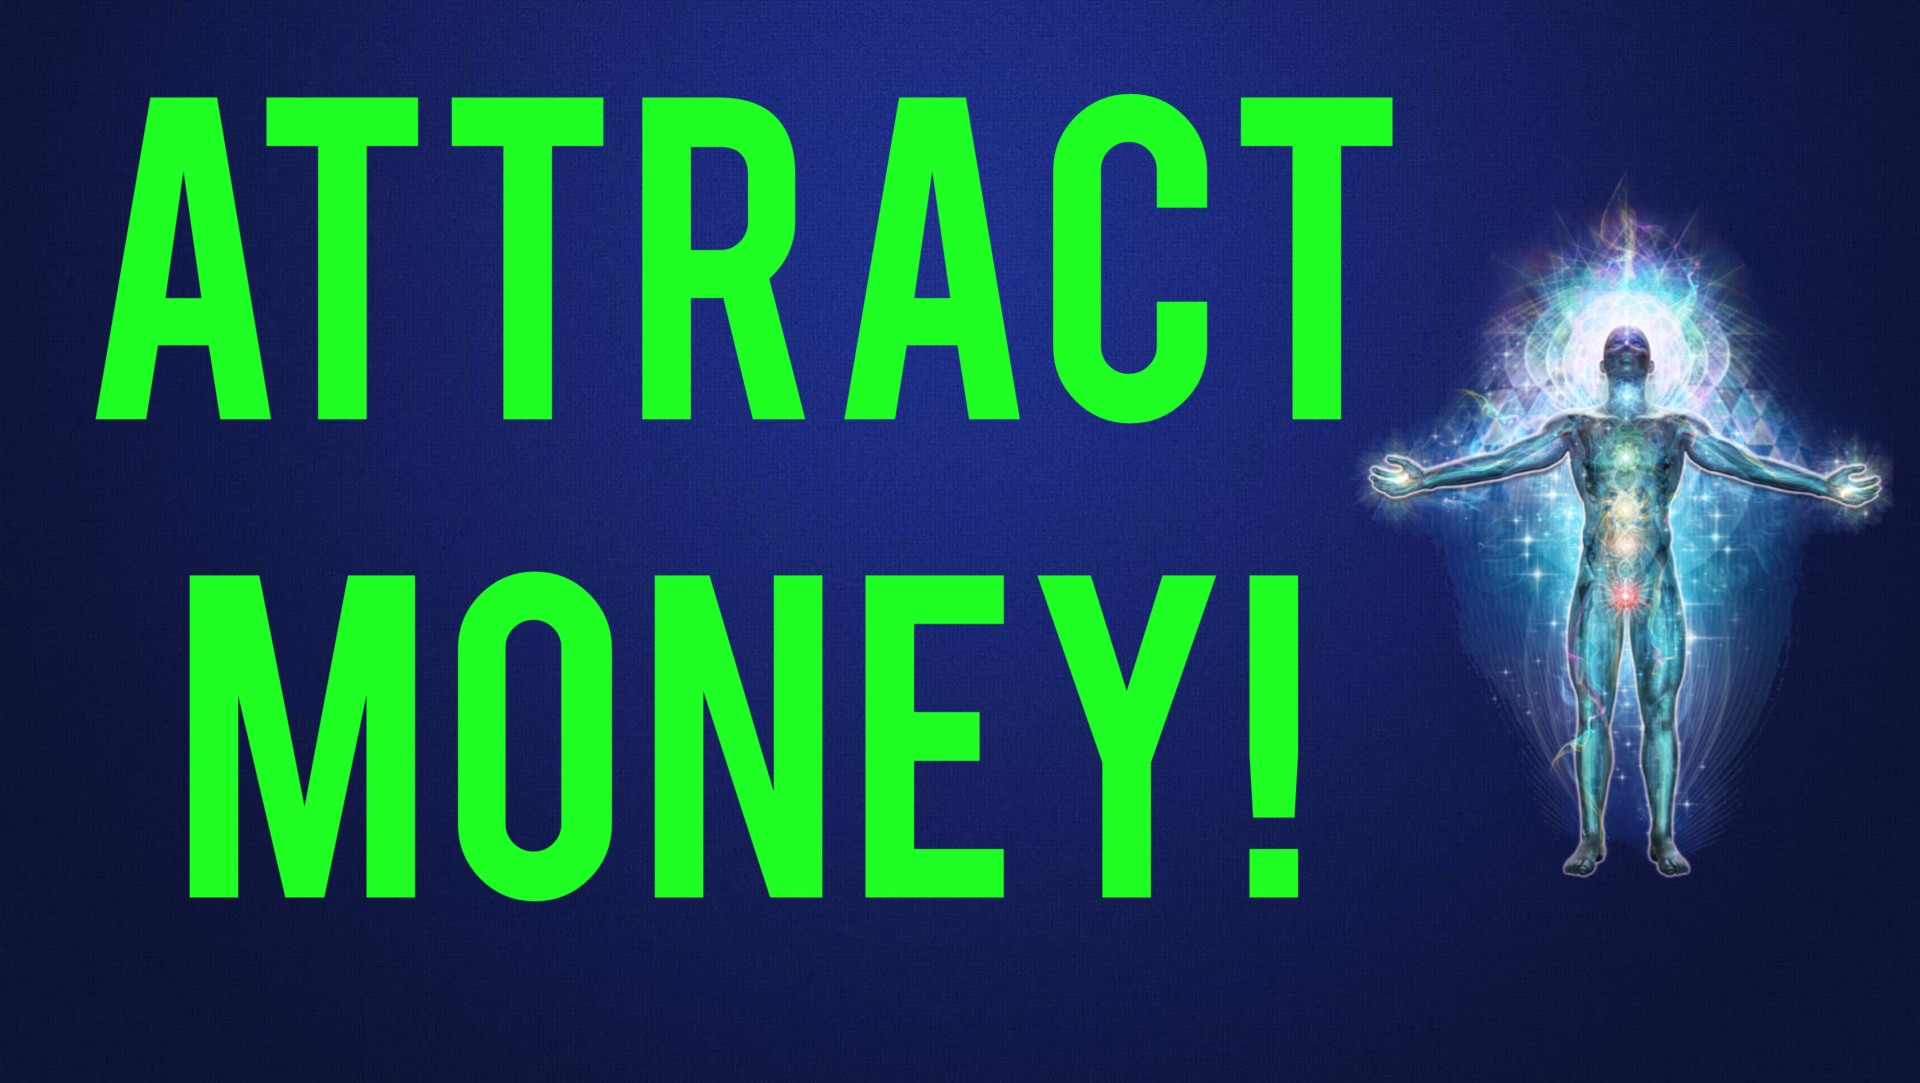 Money Flows to Me - Law of Attraction Accelerator!